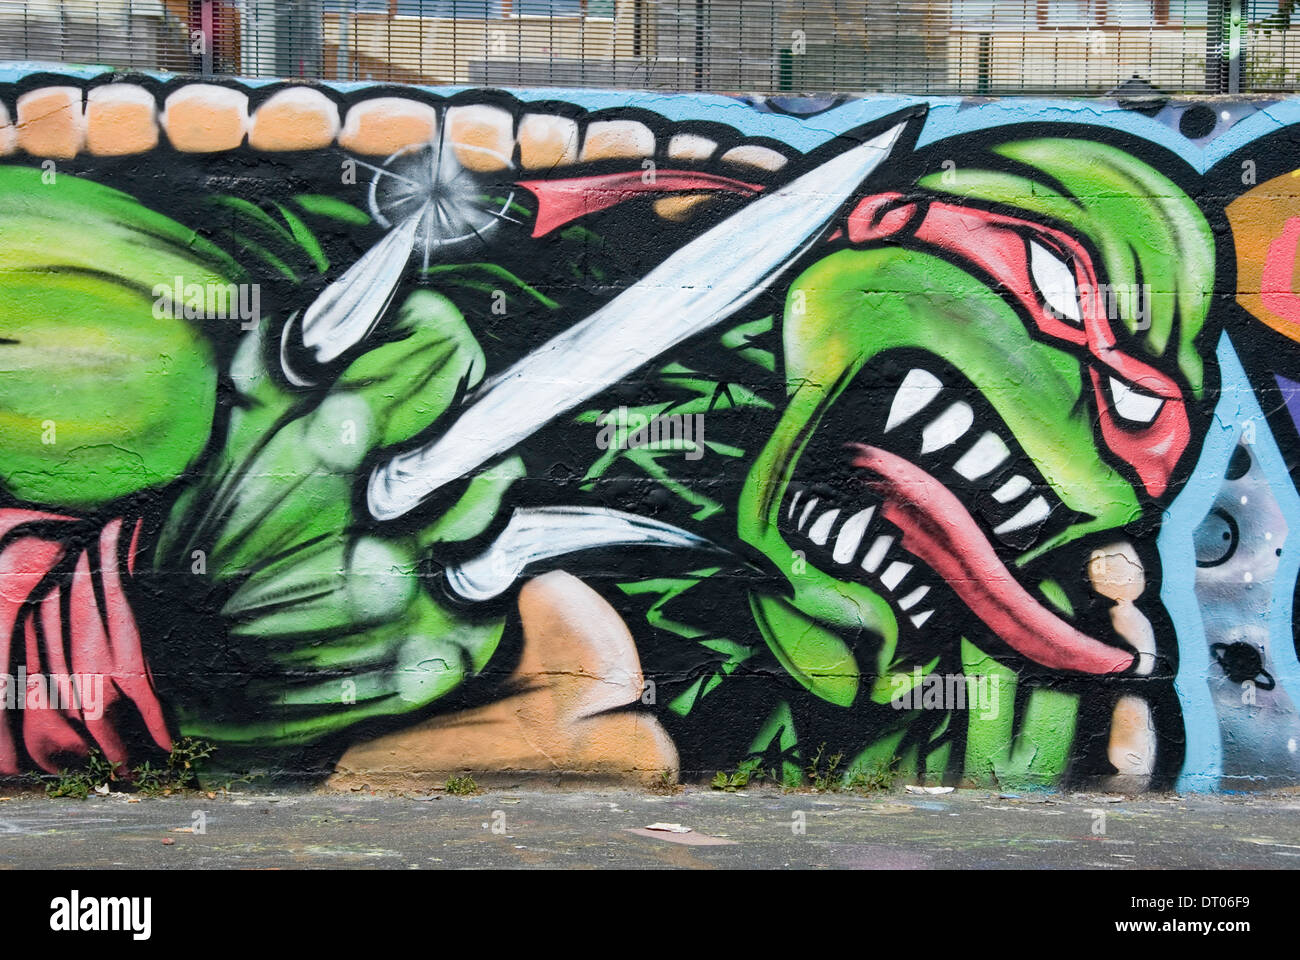 Apologise, Mutant ninja turtle graffiti